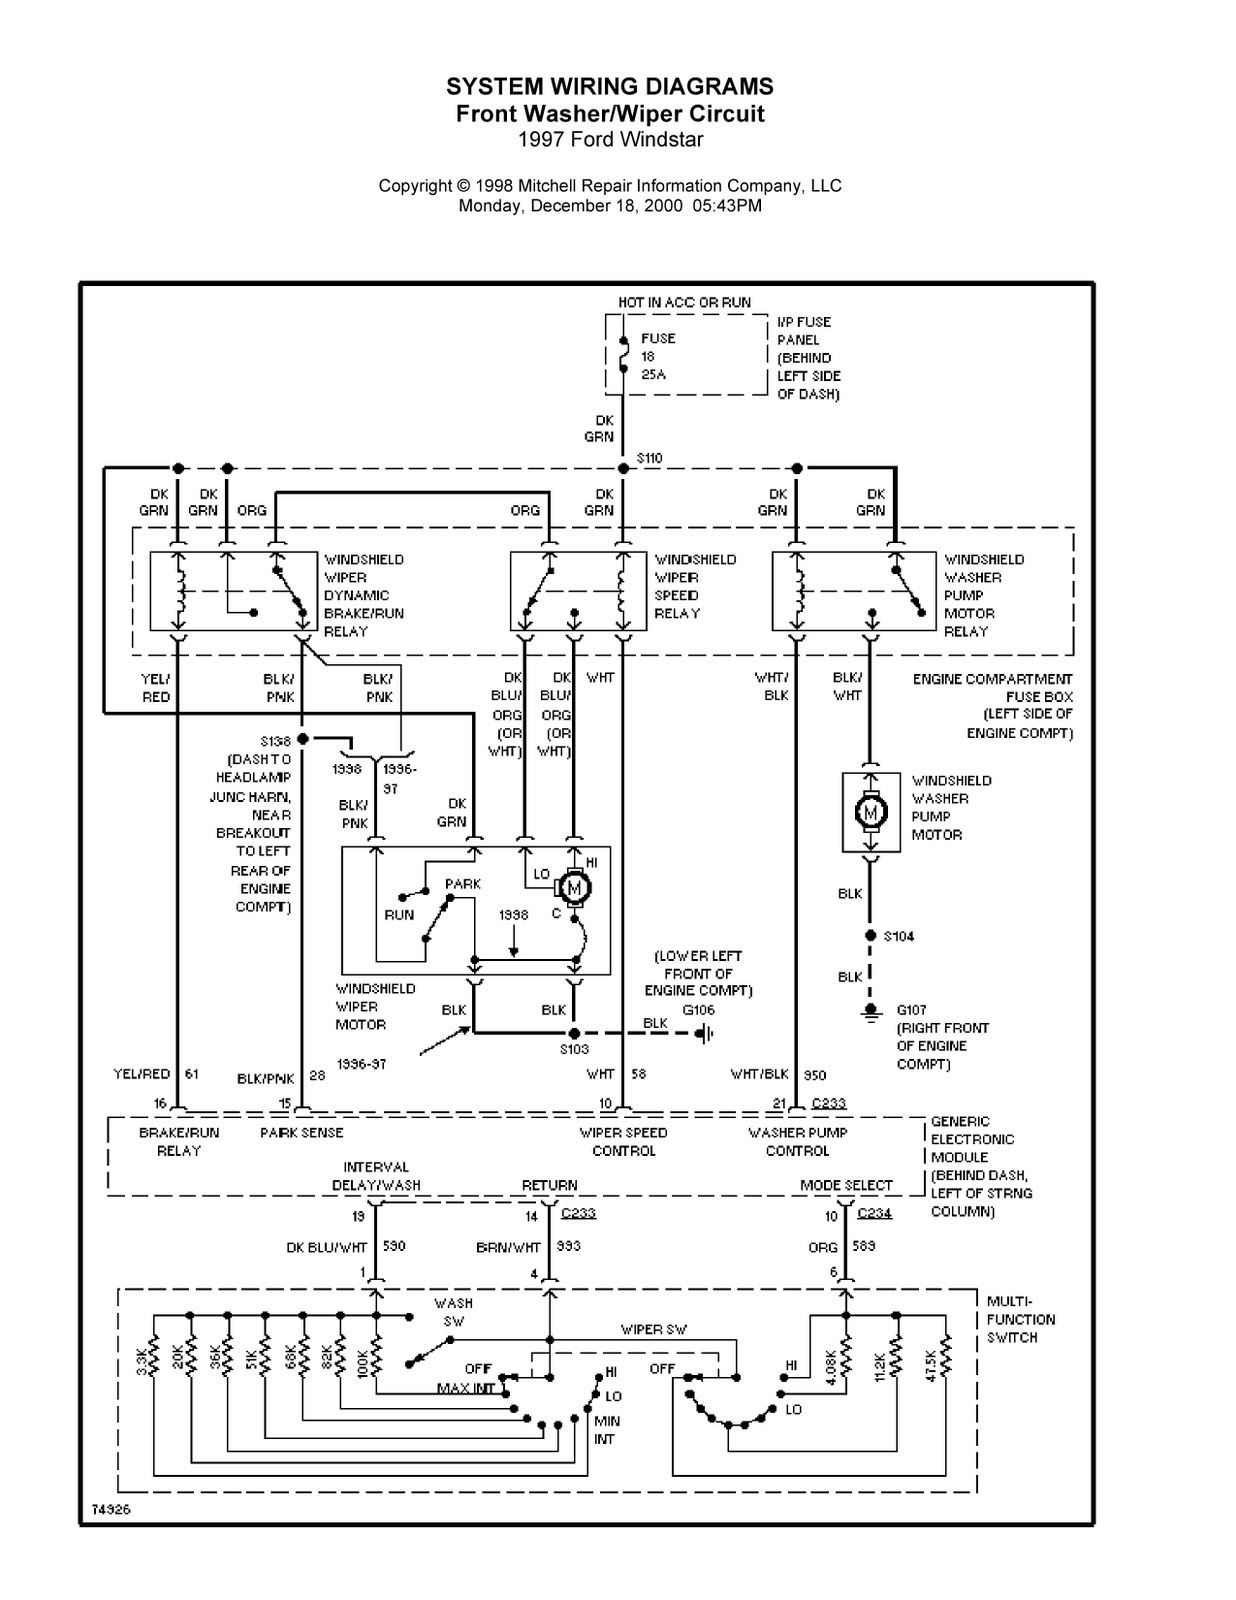 0051 1997 ford windstar complete system wiring diagrams wiring  at crackthecode.co